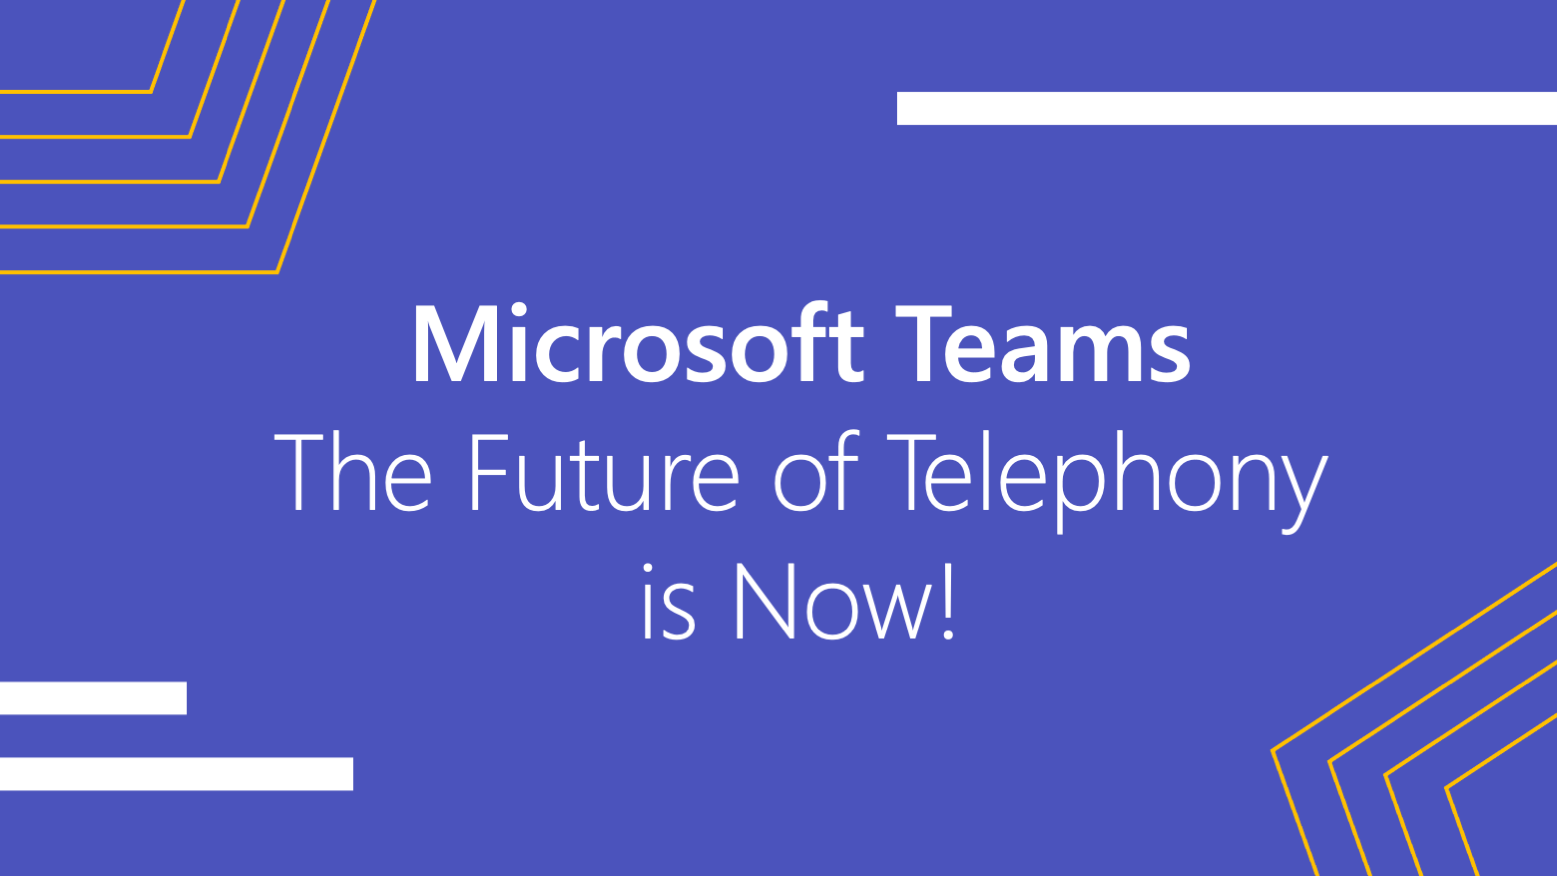 Webinar Recording: Microsoft Teams – The Future of Telephony is Now!